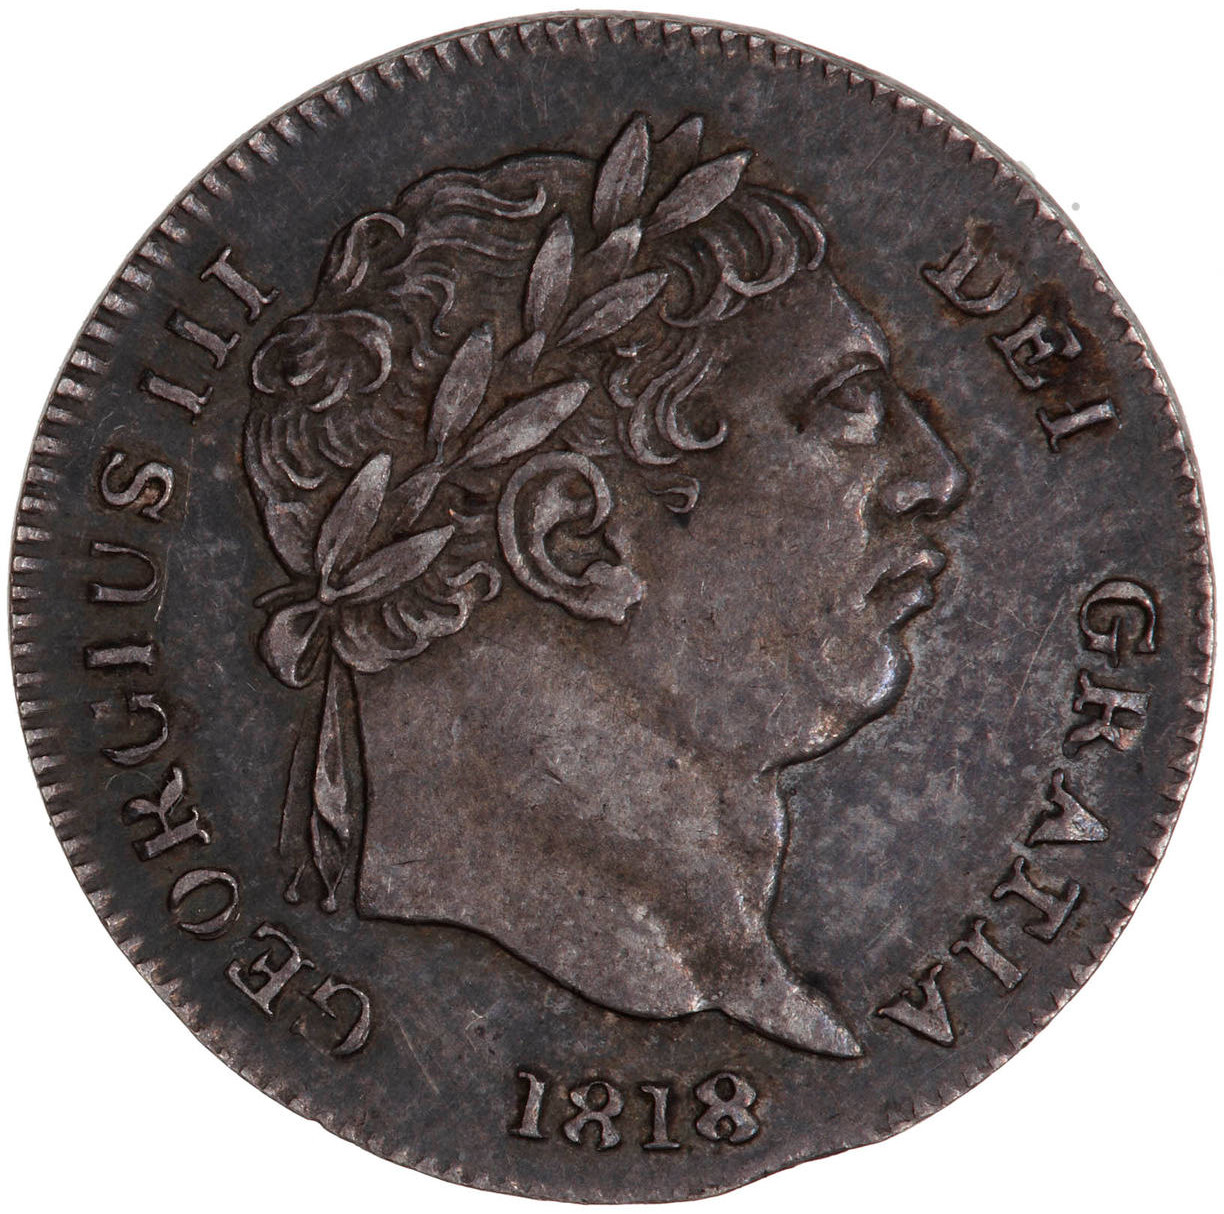 Twopence (Circulating): Photo Coin - Twopence, George III, Great Britain, 1818